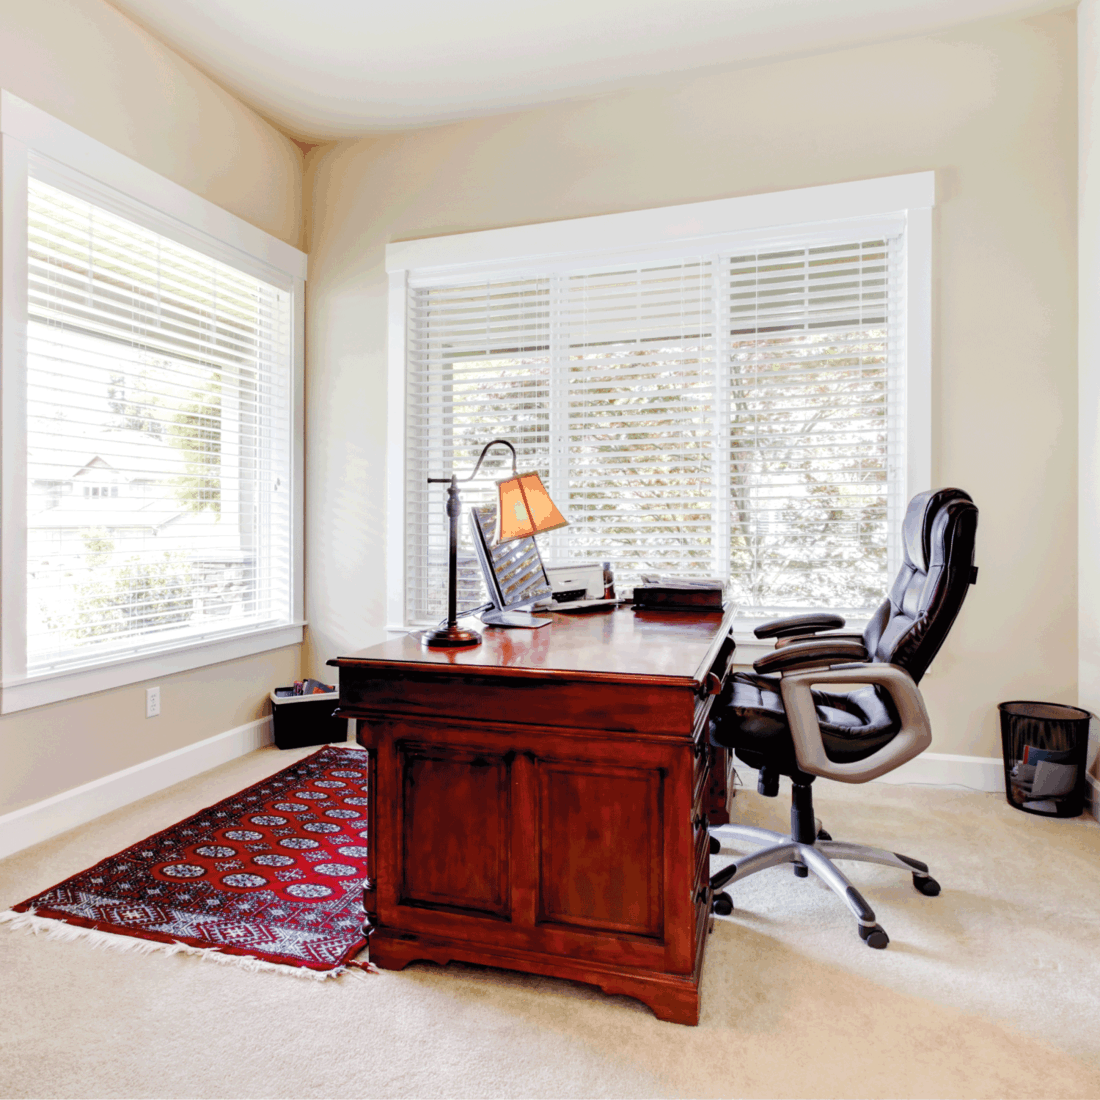 Home office with mahogany desk and leather chair